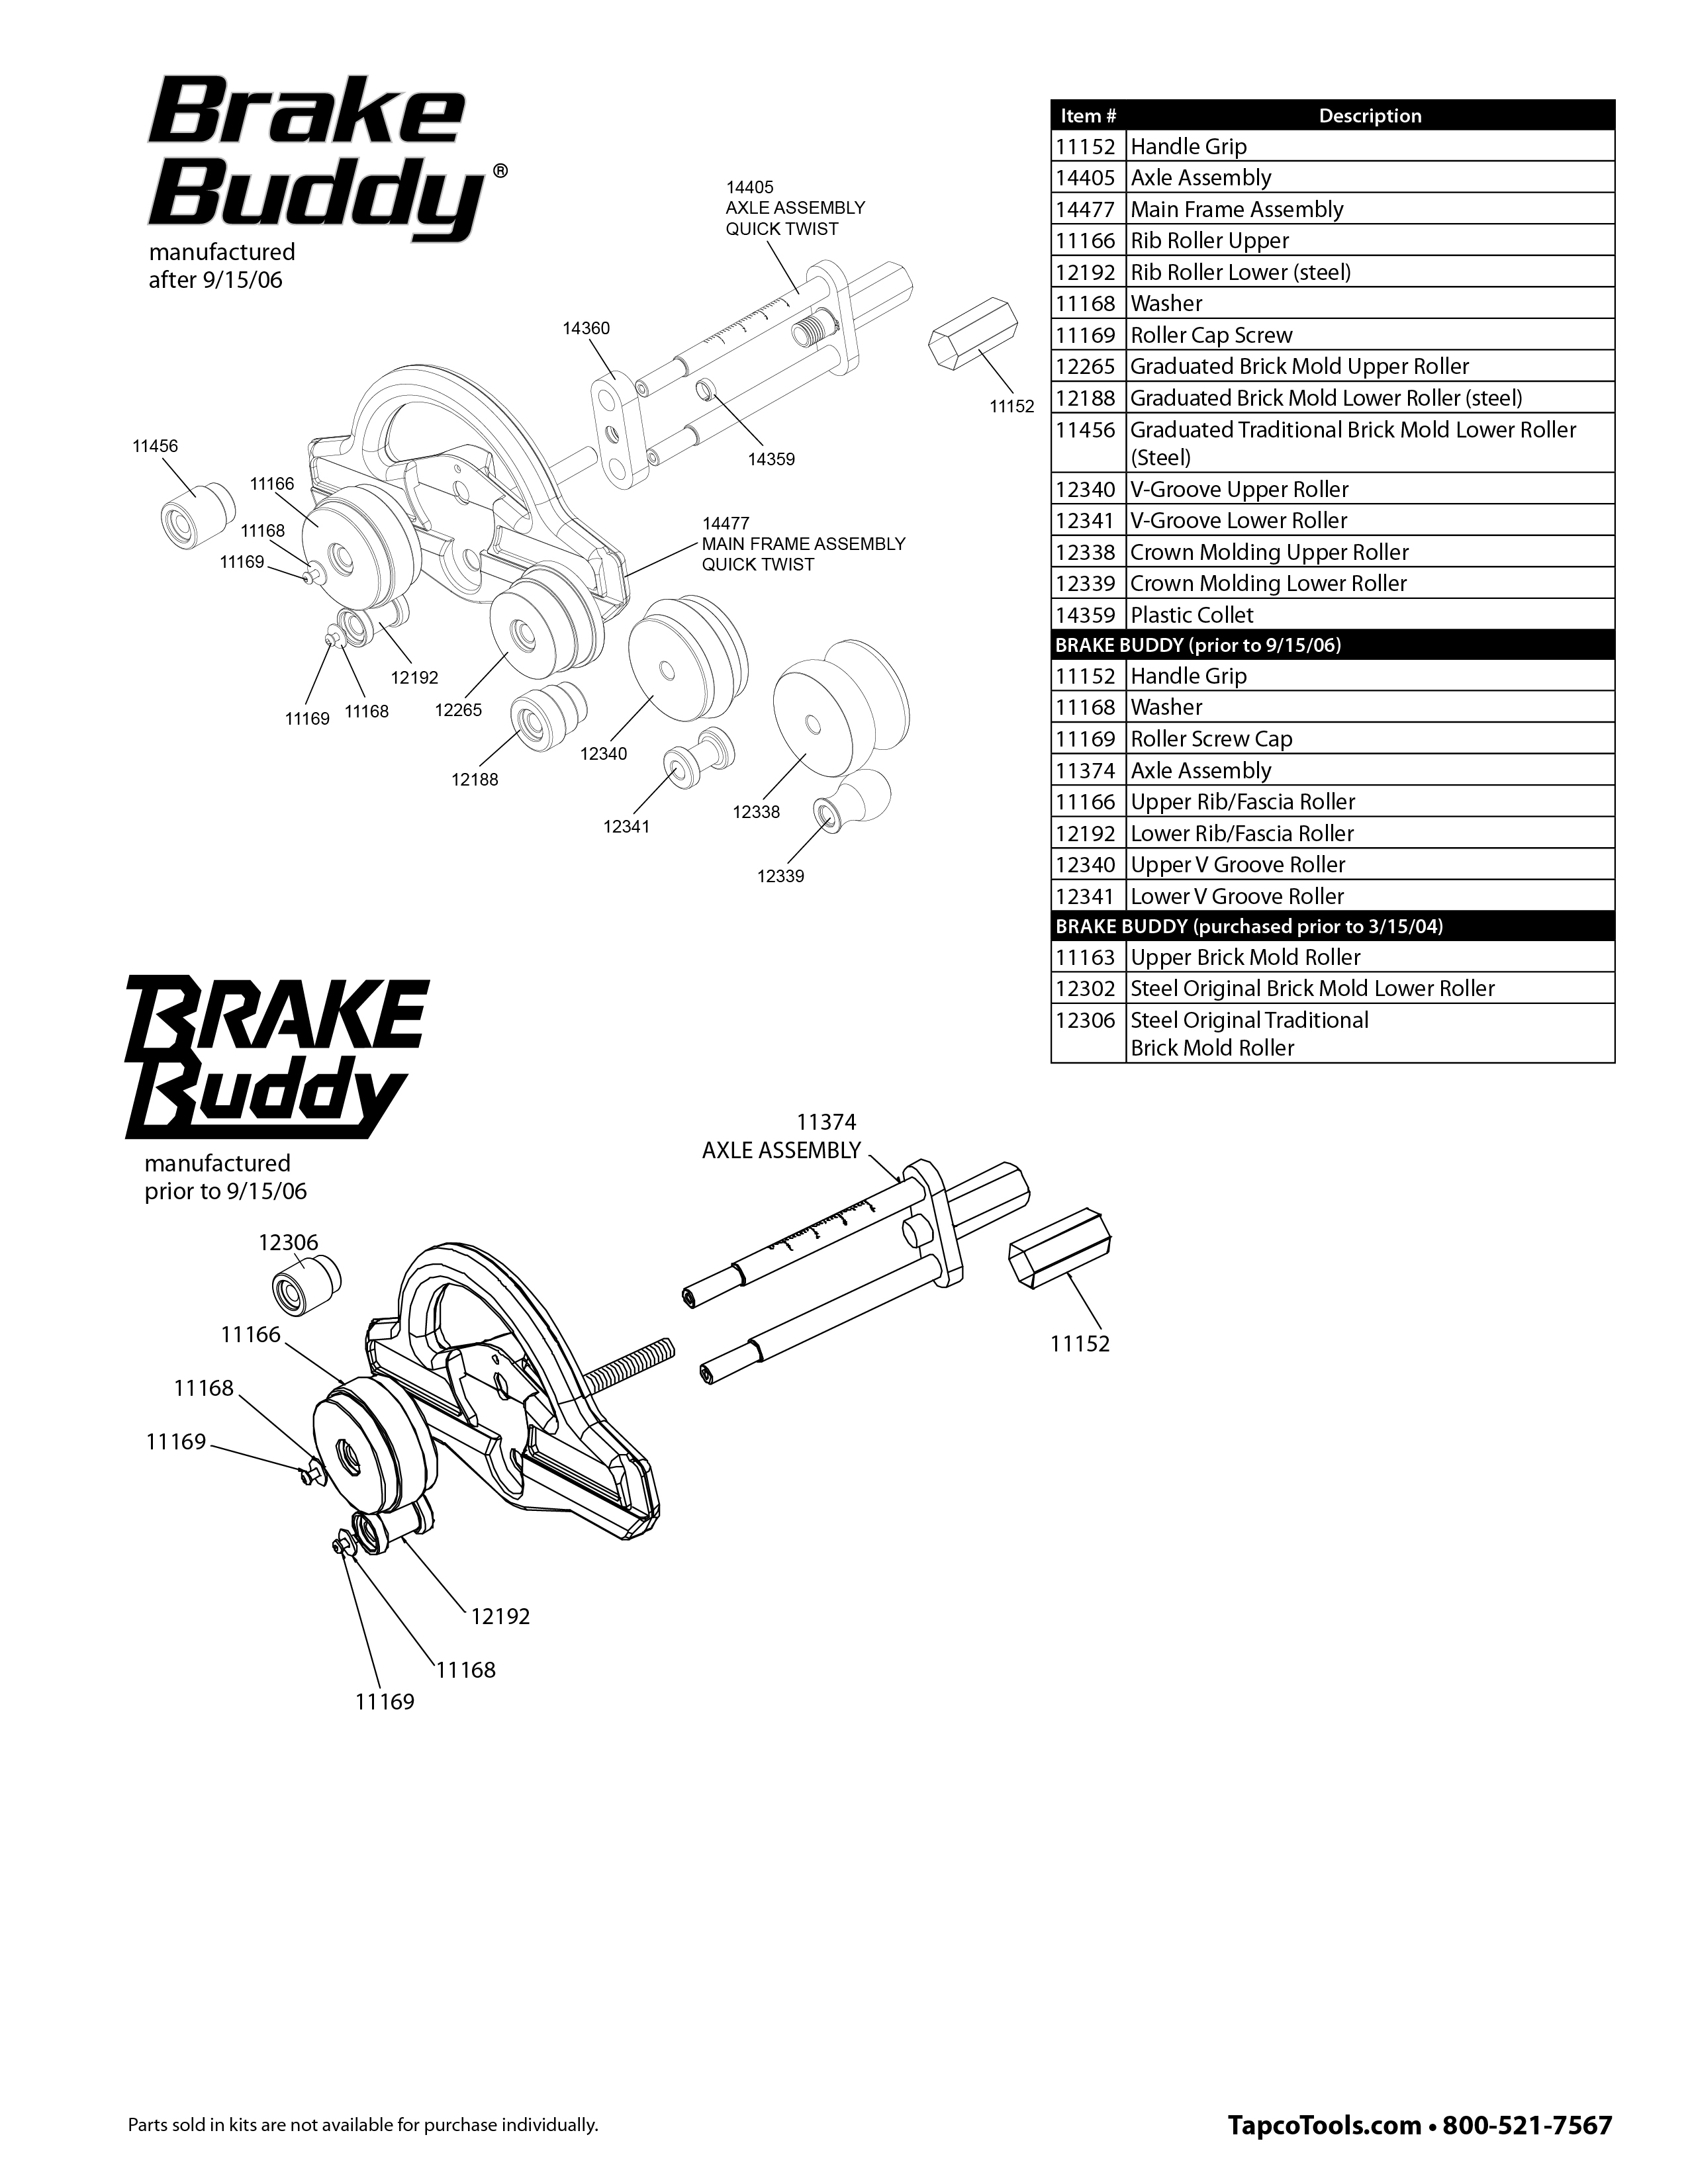 Brake Parts List : Tapco brake buddy replacement parts from buymbs